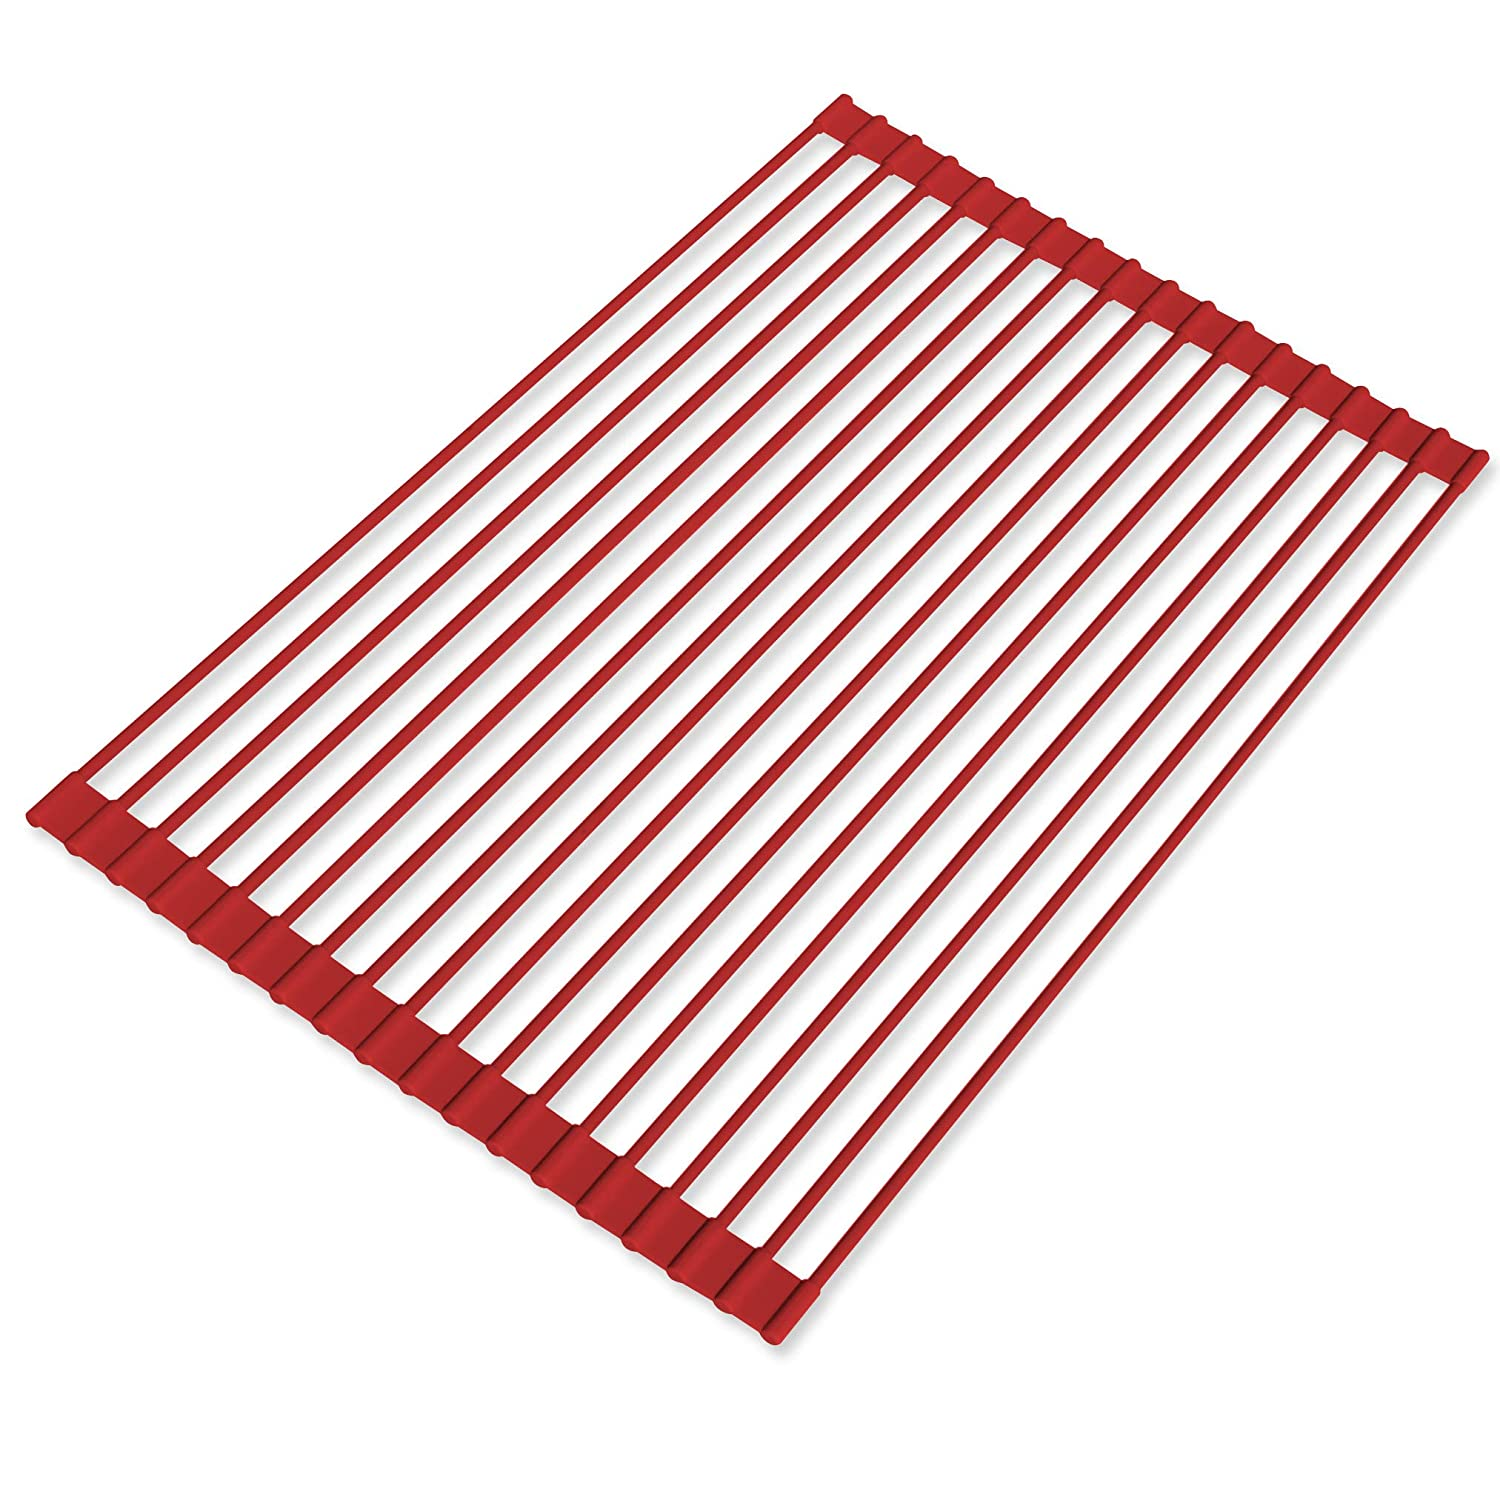 Over the Sink Roll-Up Drying Rack Limited Edition Red